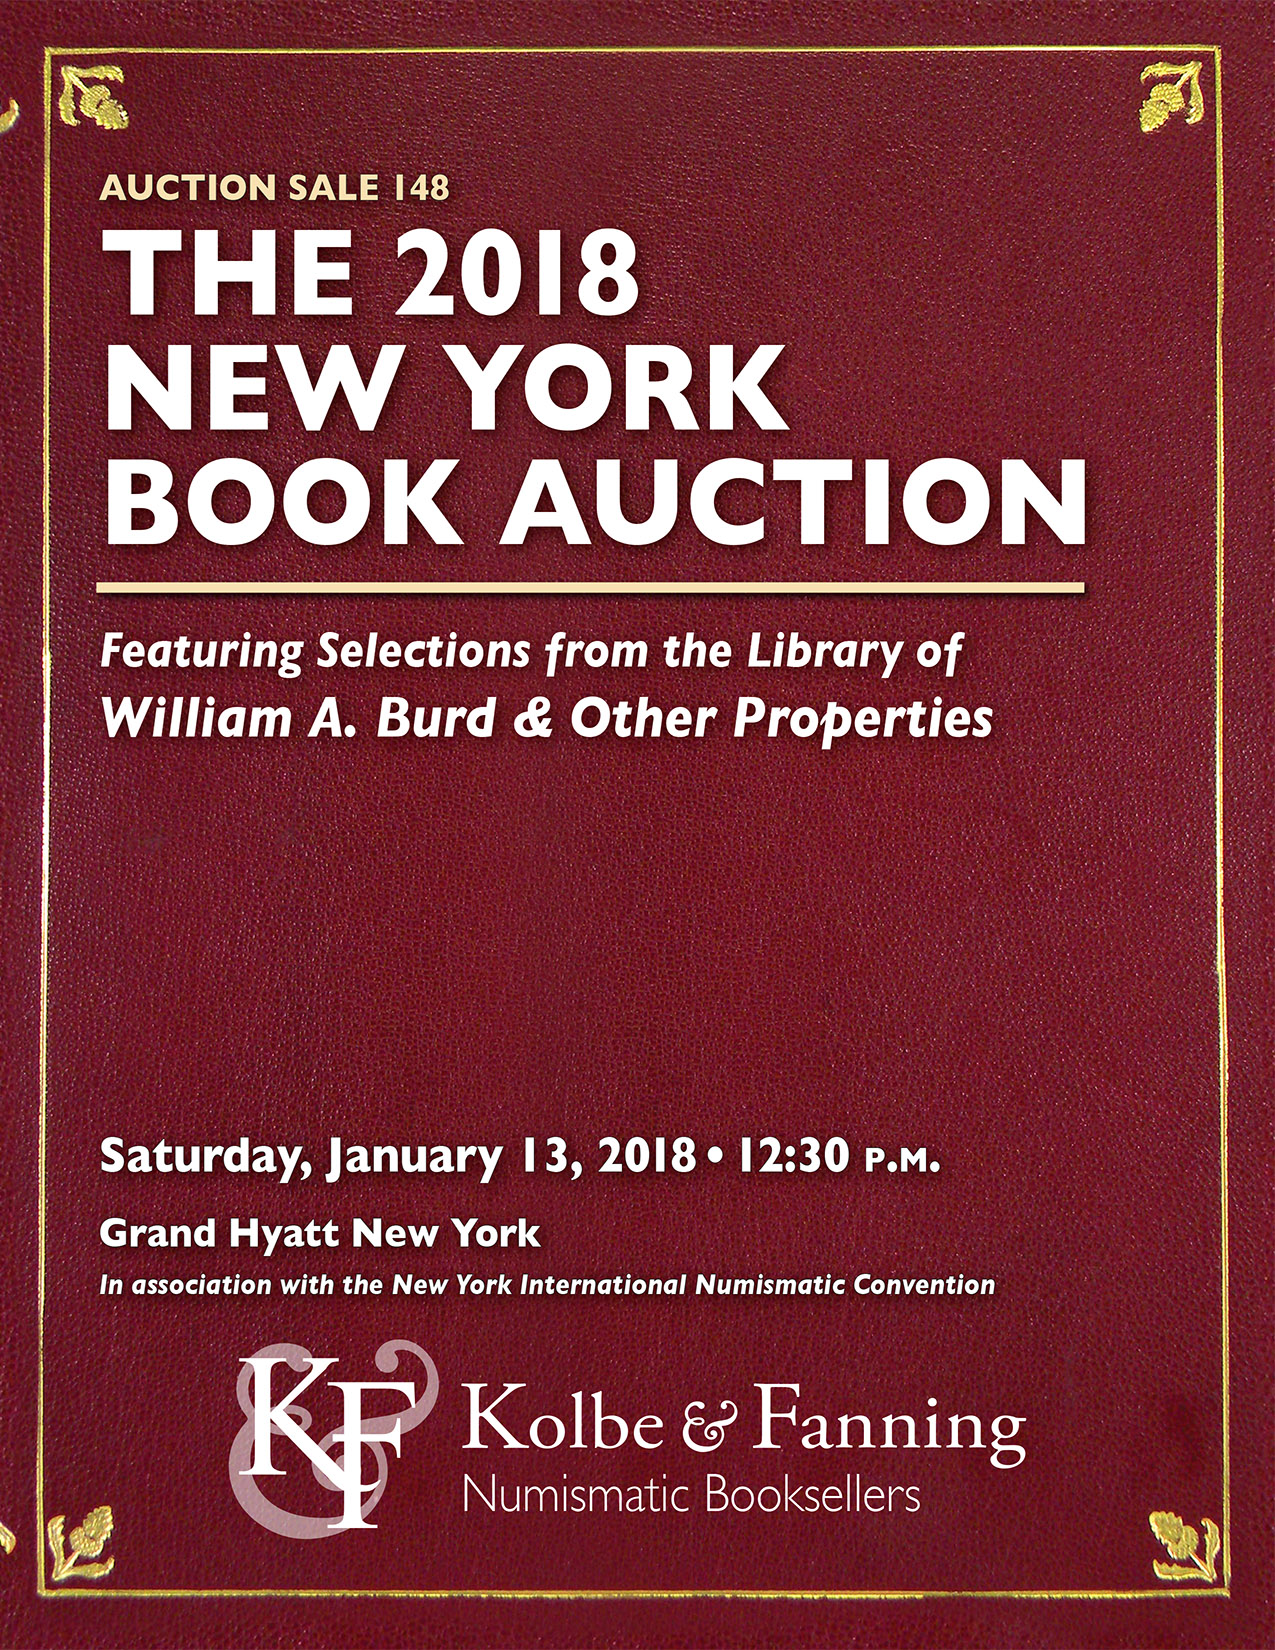 2018 New York Book Auction